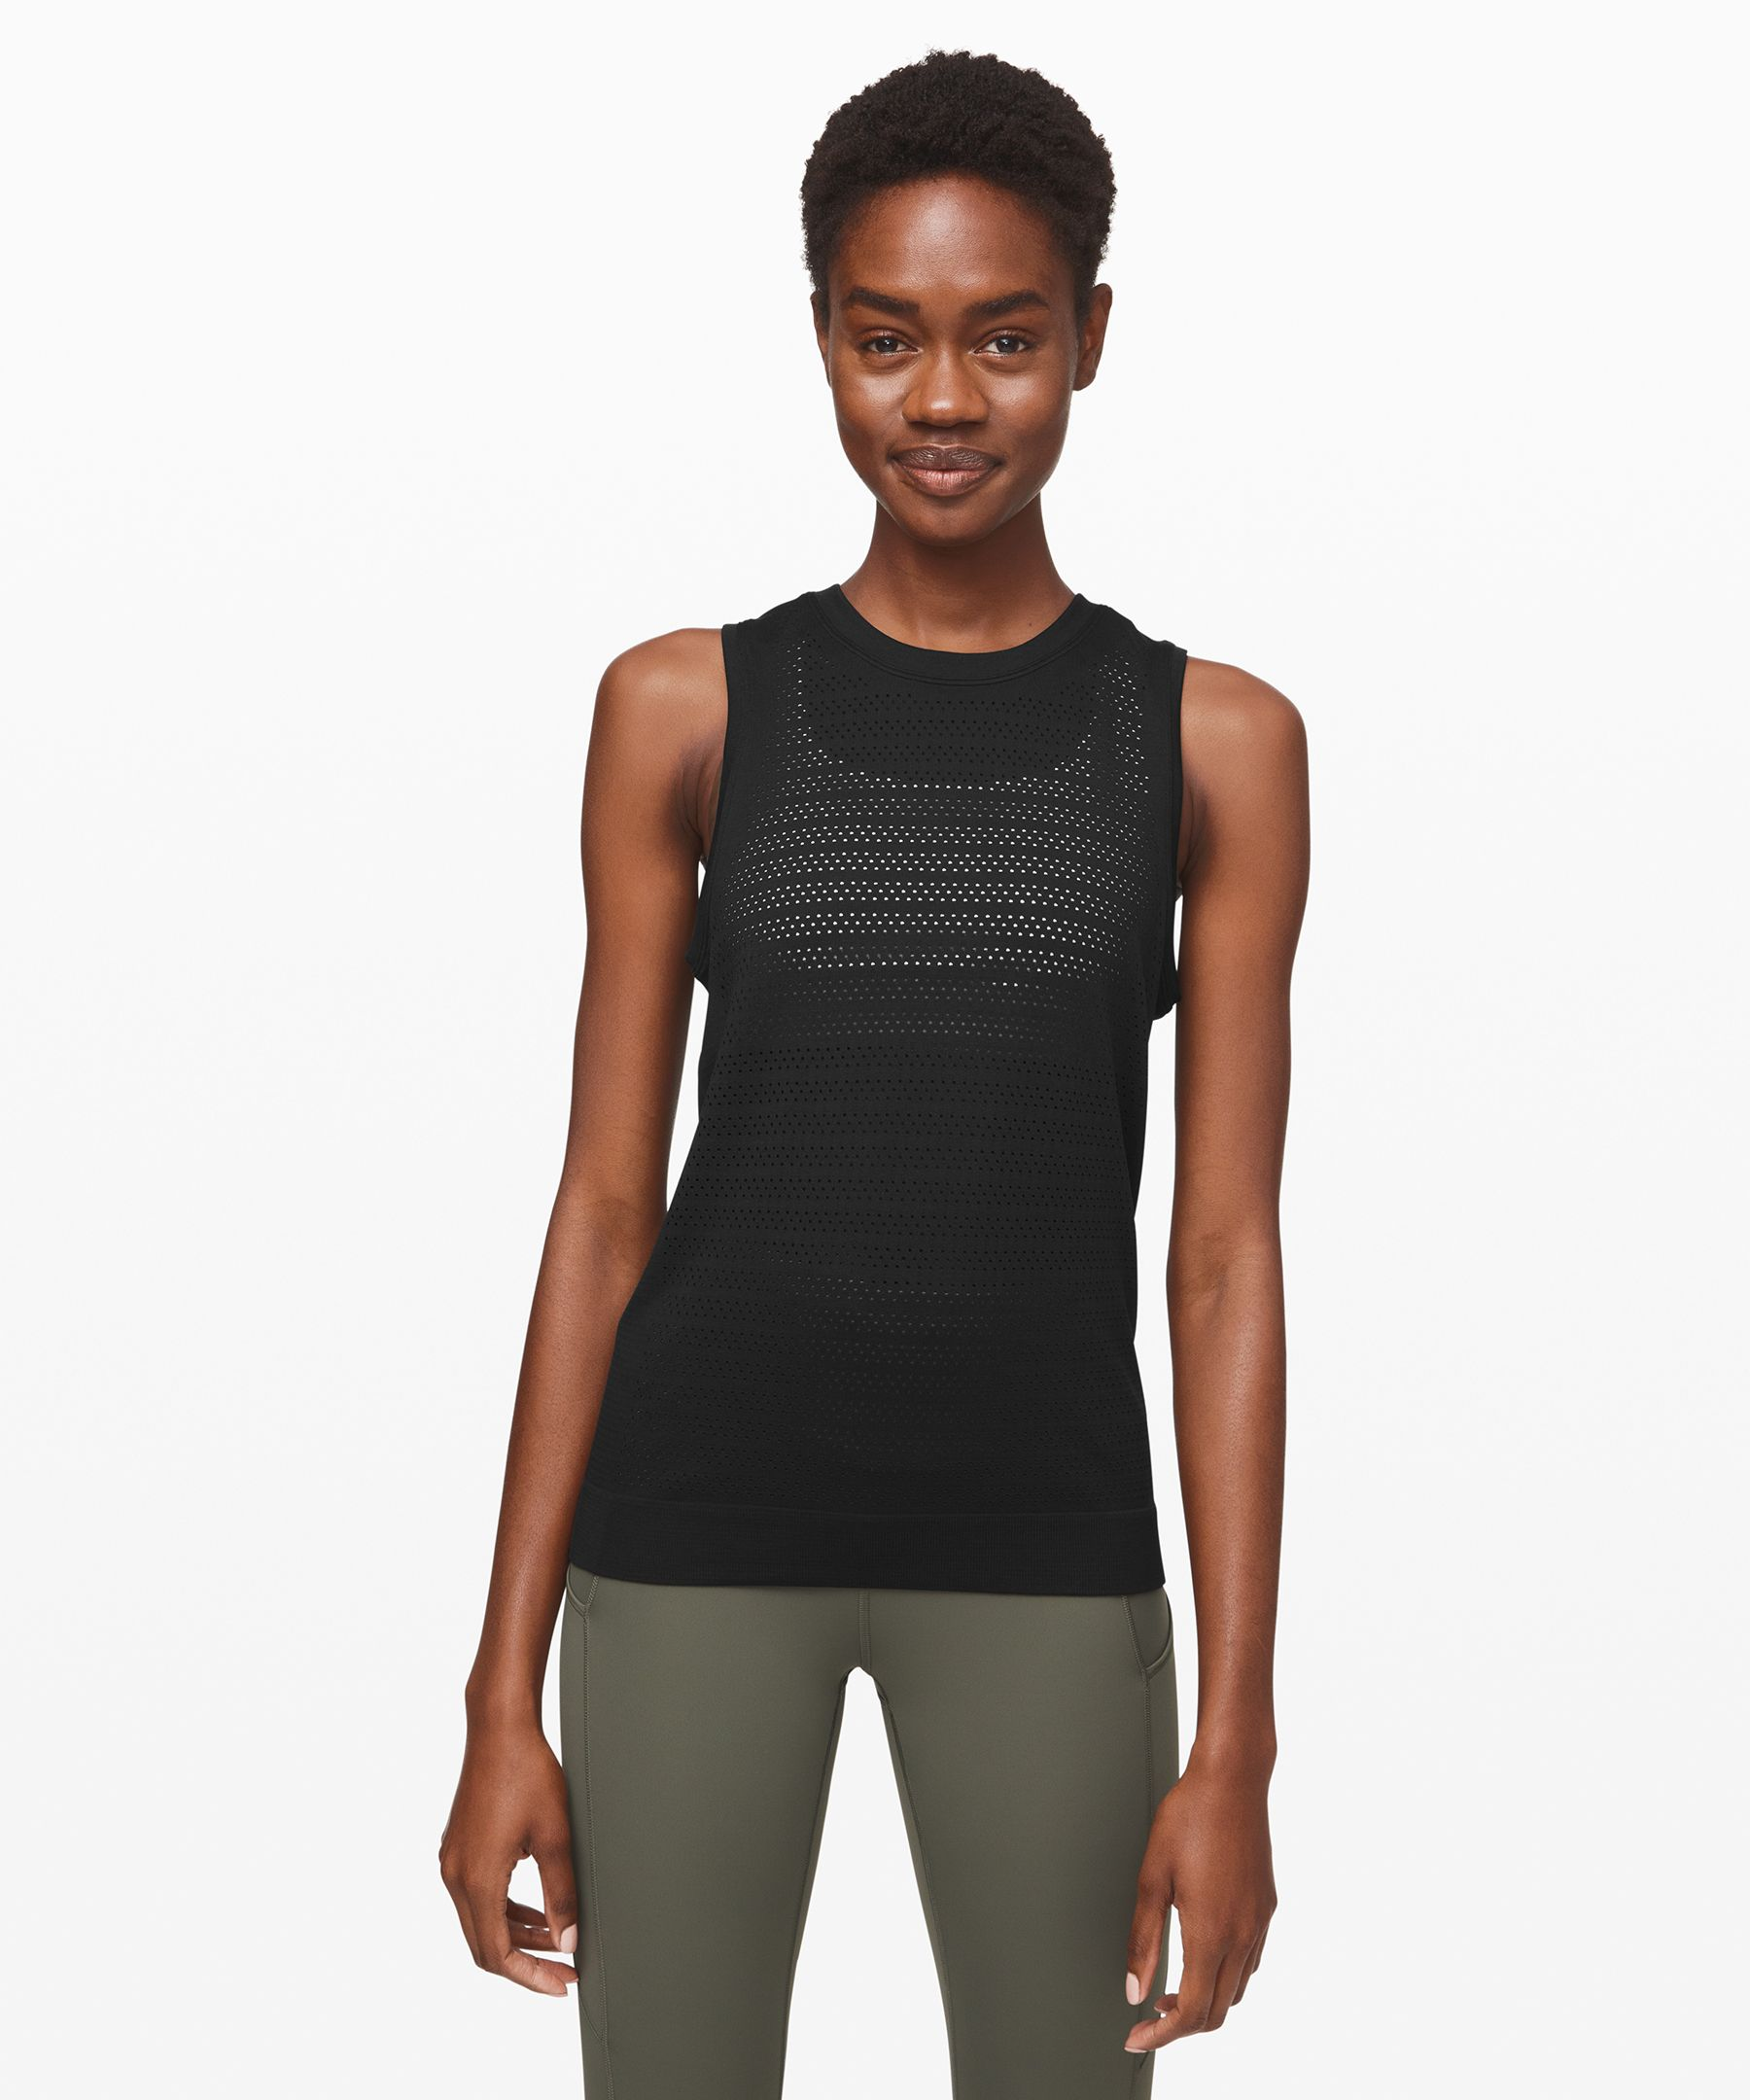 From long runs to circuit  reps, catch your cool in this  seamless, anti-stink tank.  Open-hole ventilation allows  for plenty of airflow when  your workout heats up.